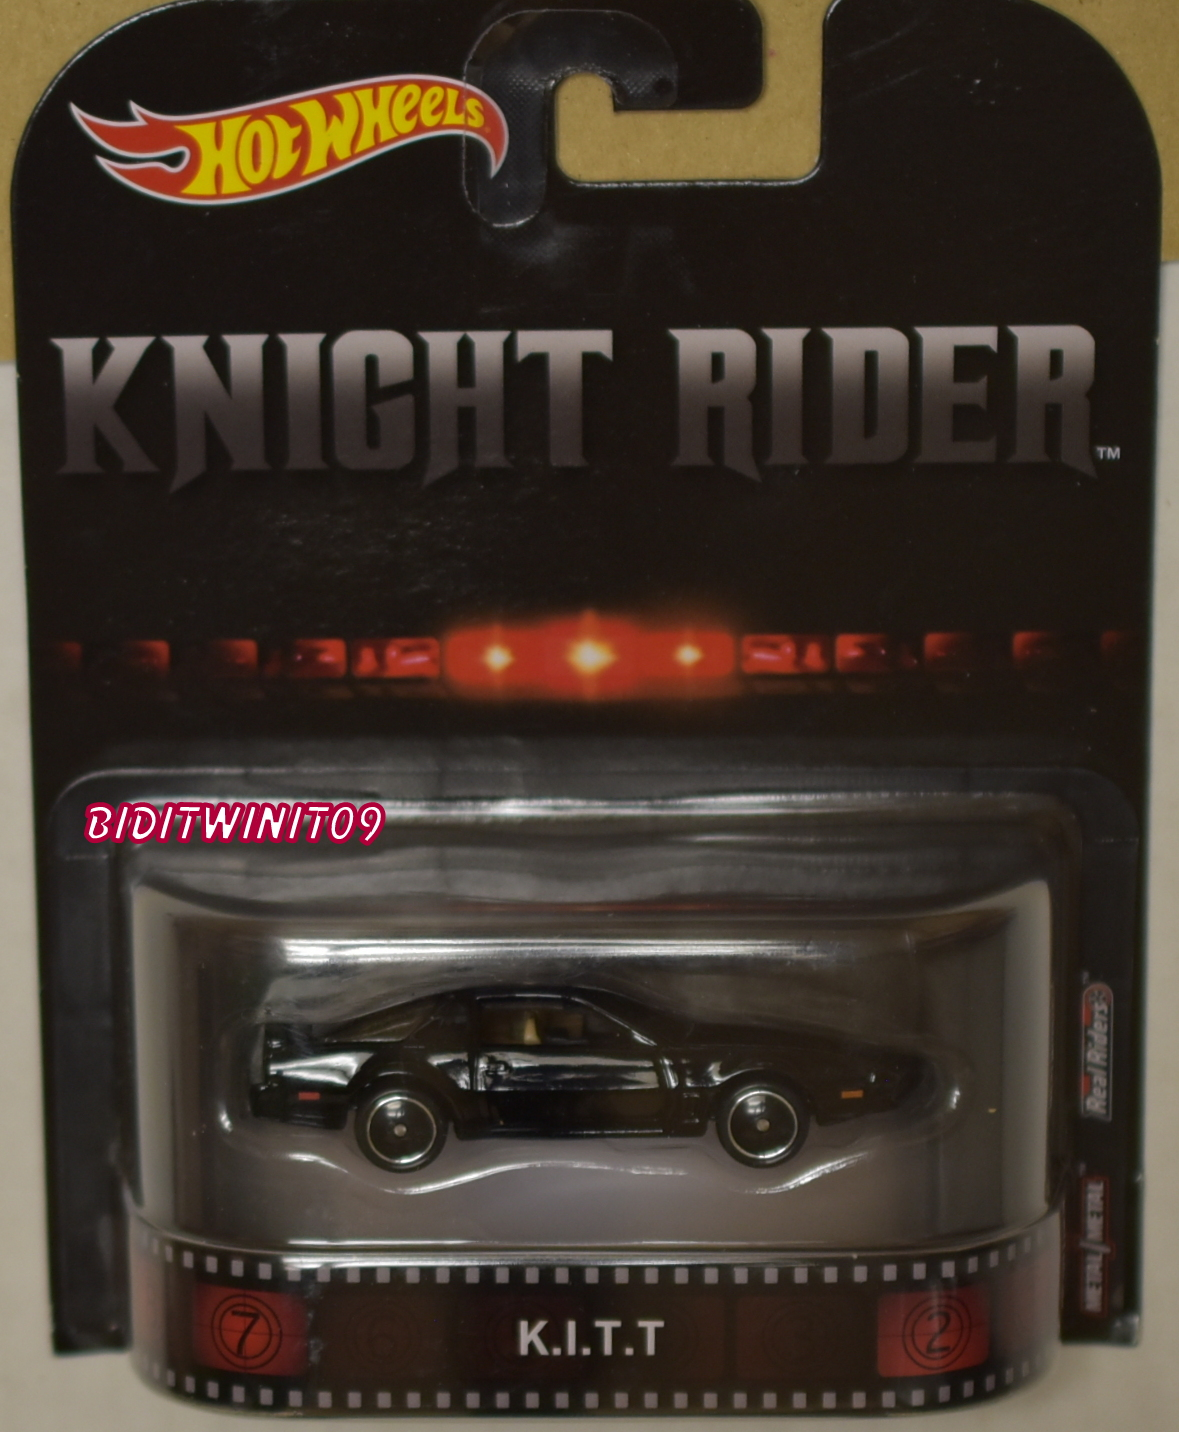 HOT WHEELS RETRO ENTERTAINMENT KNIGHT RIDER K.I.T.T